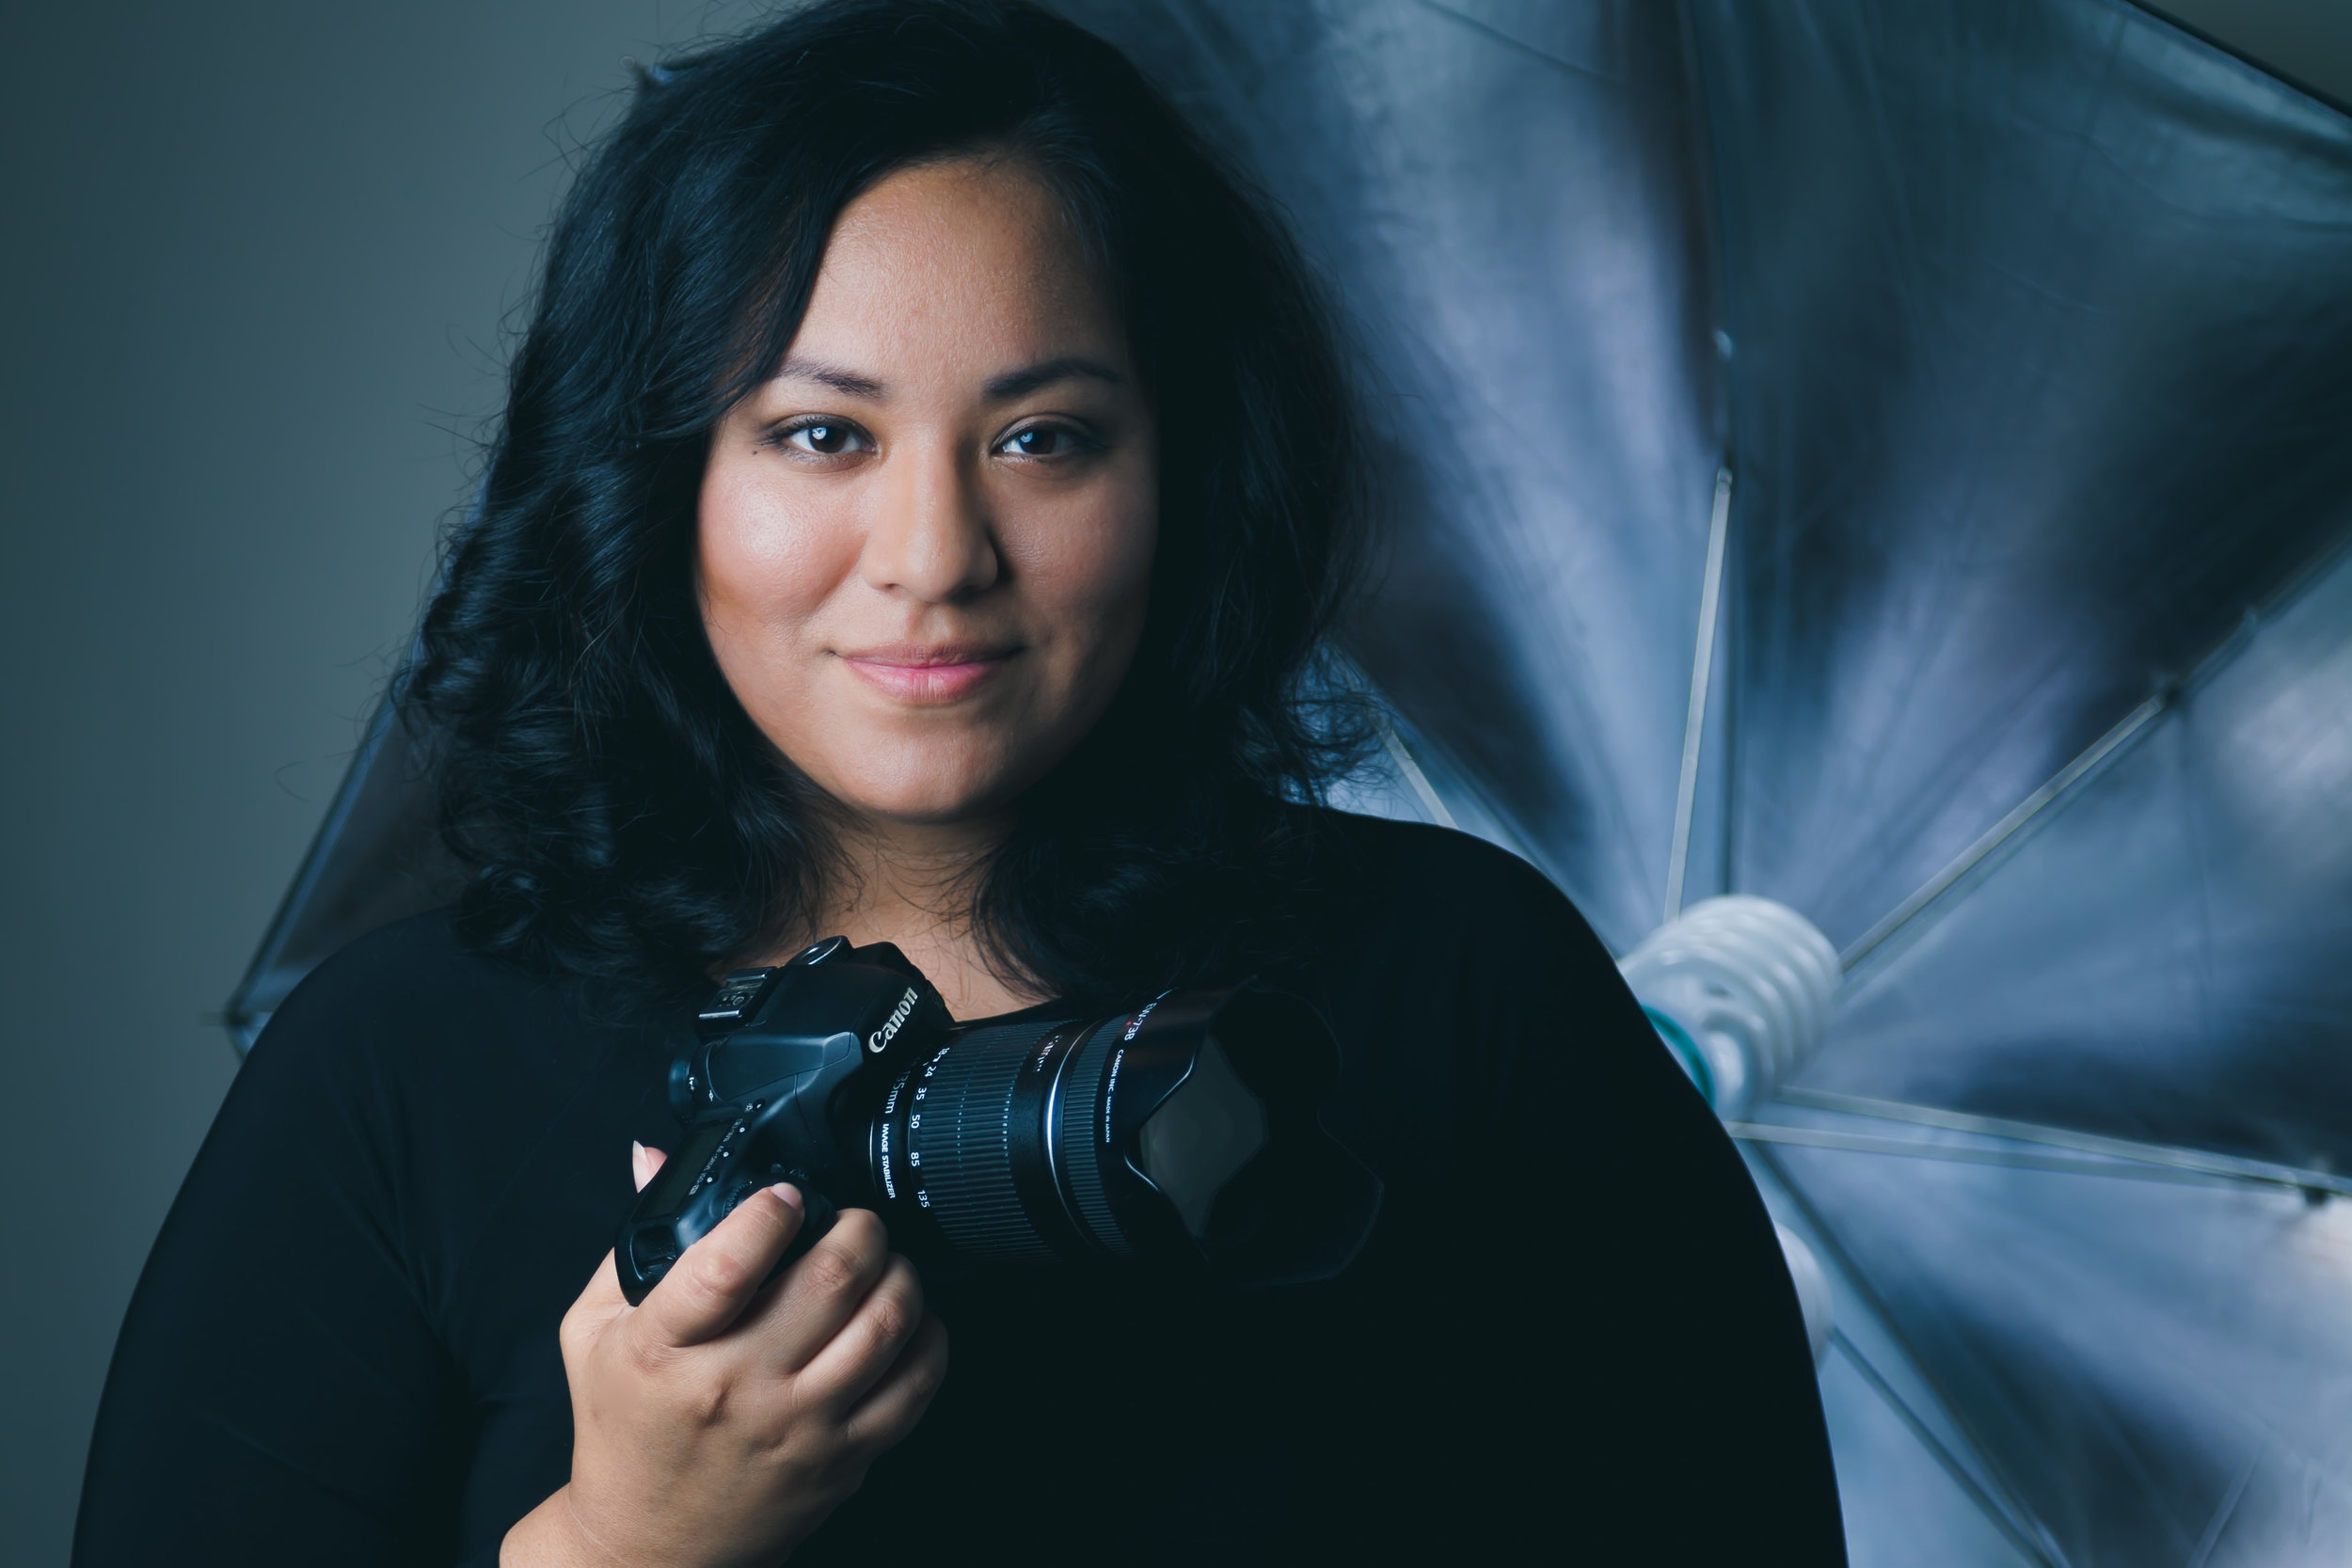 """The Photographer - Award winning portrait photographer Carol Lara has risen to the top of her industry. Based in St. Louis, her portraits have won Best of Show in the show: Life in Motion at Manchester Arts, The Award of Excellence for the show: Driven to Abstraction at Soulard Art Gallery, Visitors Choice at The Old Orchard Art Gallery in Webster Groves and 2nd Place in the FOCUS Photography Exhibition. Her fine art portraits have also been sold all around the city to fine art collectors that appreciate her self-described style of """"Grace and Grit"""". A multi-passionate entrepreneur, she believes strongly that people should live their most creative life. She has been featured in St. Louis Magazine, Fox 2 in the morning, was nominated as Emerging Business of the Year at the Adelante Awards 2016, a featured speaker at """"The Art of a Woman"""" at the International Photography Hall of Fame in 2017, featured in En Contacto Magazine for her passion & ability to inspire and was a featured speaker for the STL Young Women's Conference in March 2018.Carol specializes in solo portraits such as Beauty, Boudoir, Maternity, Artistic Composites and Headshots. Creating intimate portraits, bringing forth each subject's authenticity is where she shines.Her clients describe it best, saying her work leaves them feeling"""